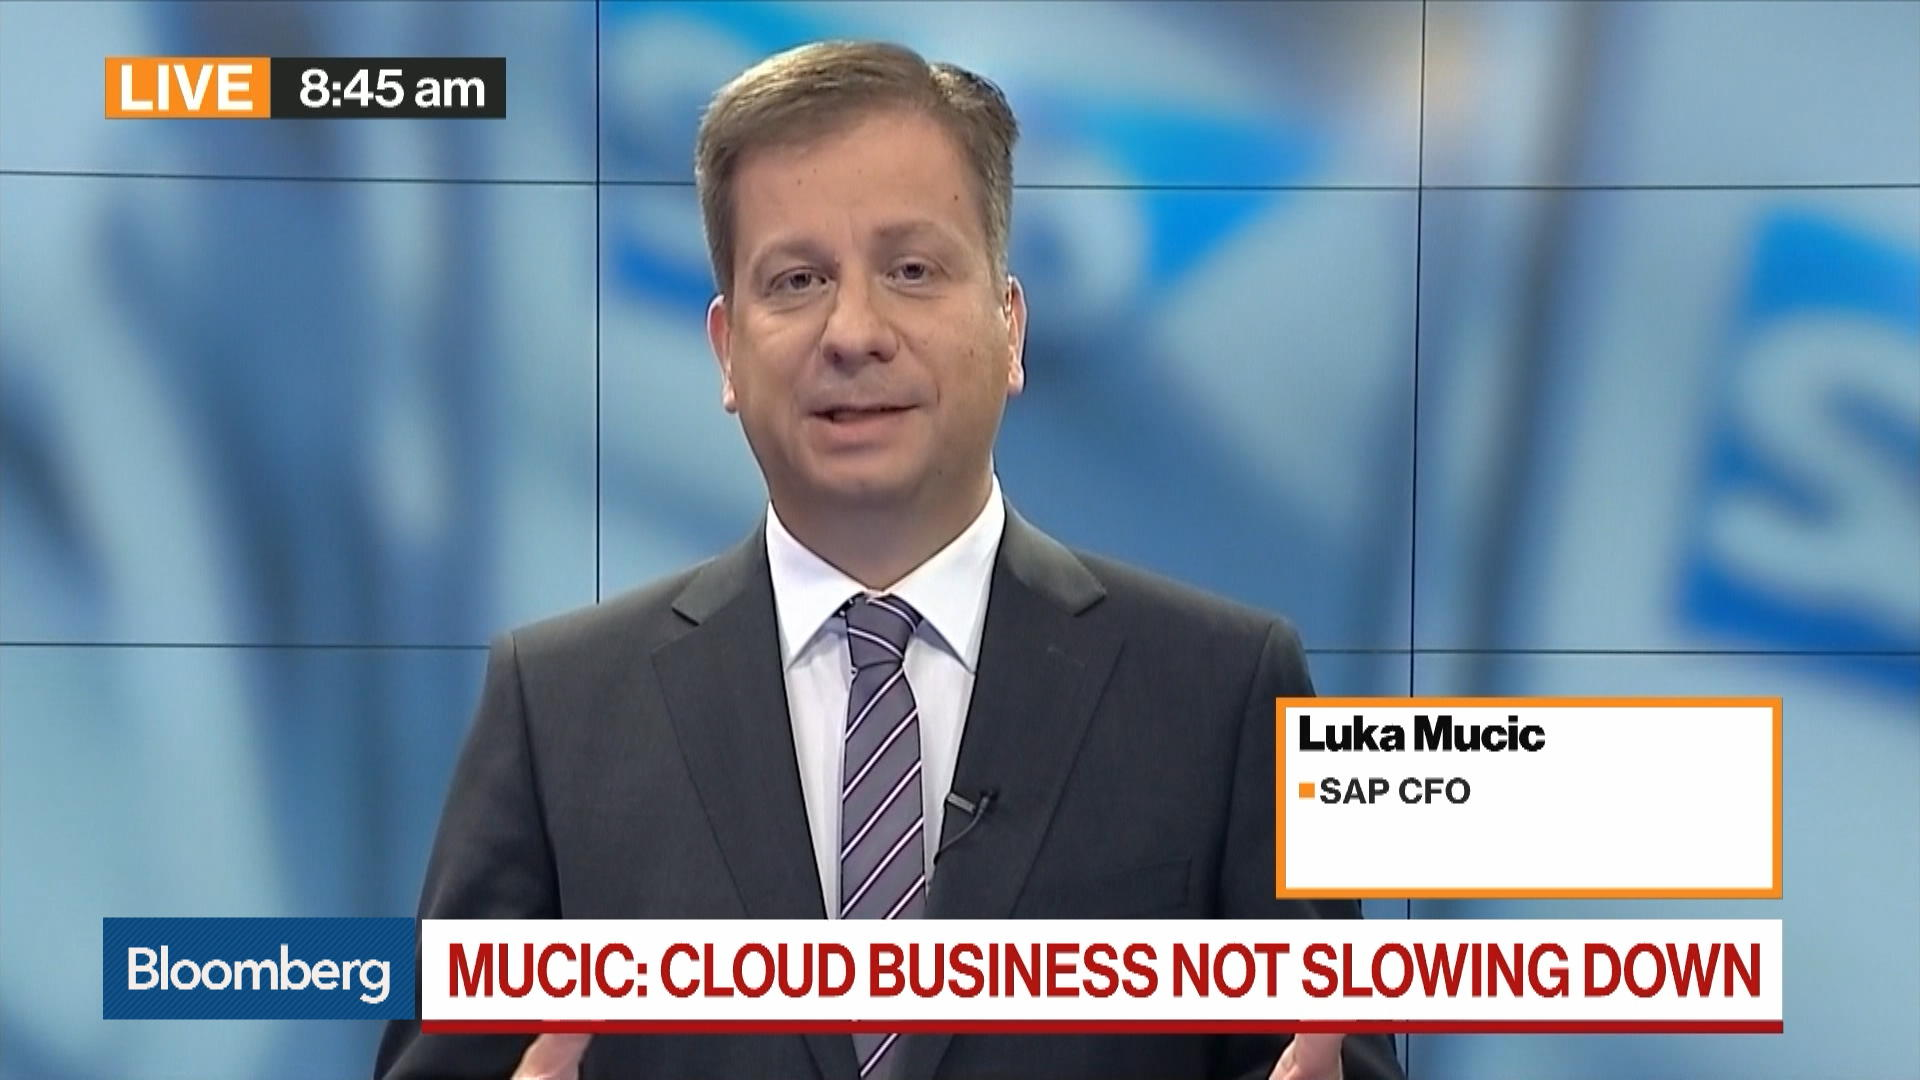 Cloud Business Is Not Slowing Down, Says SAP CFO